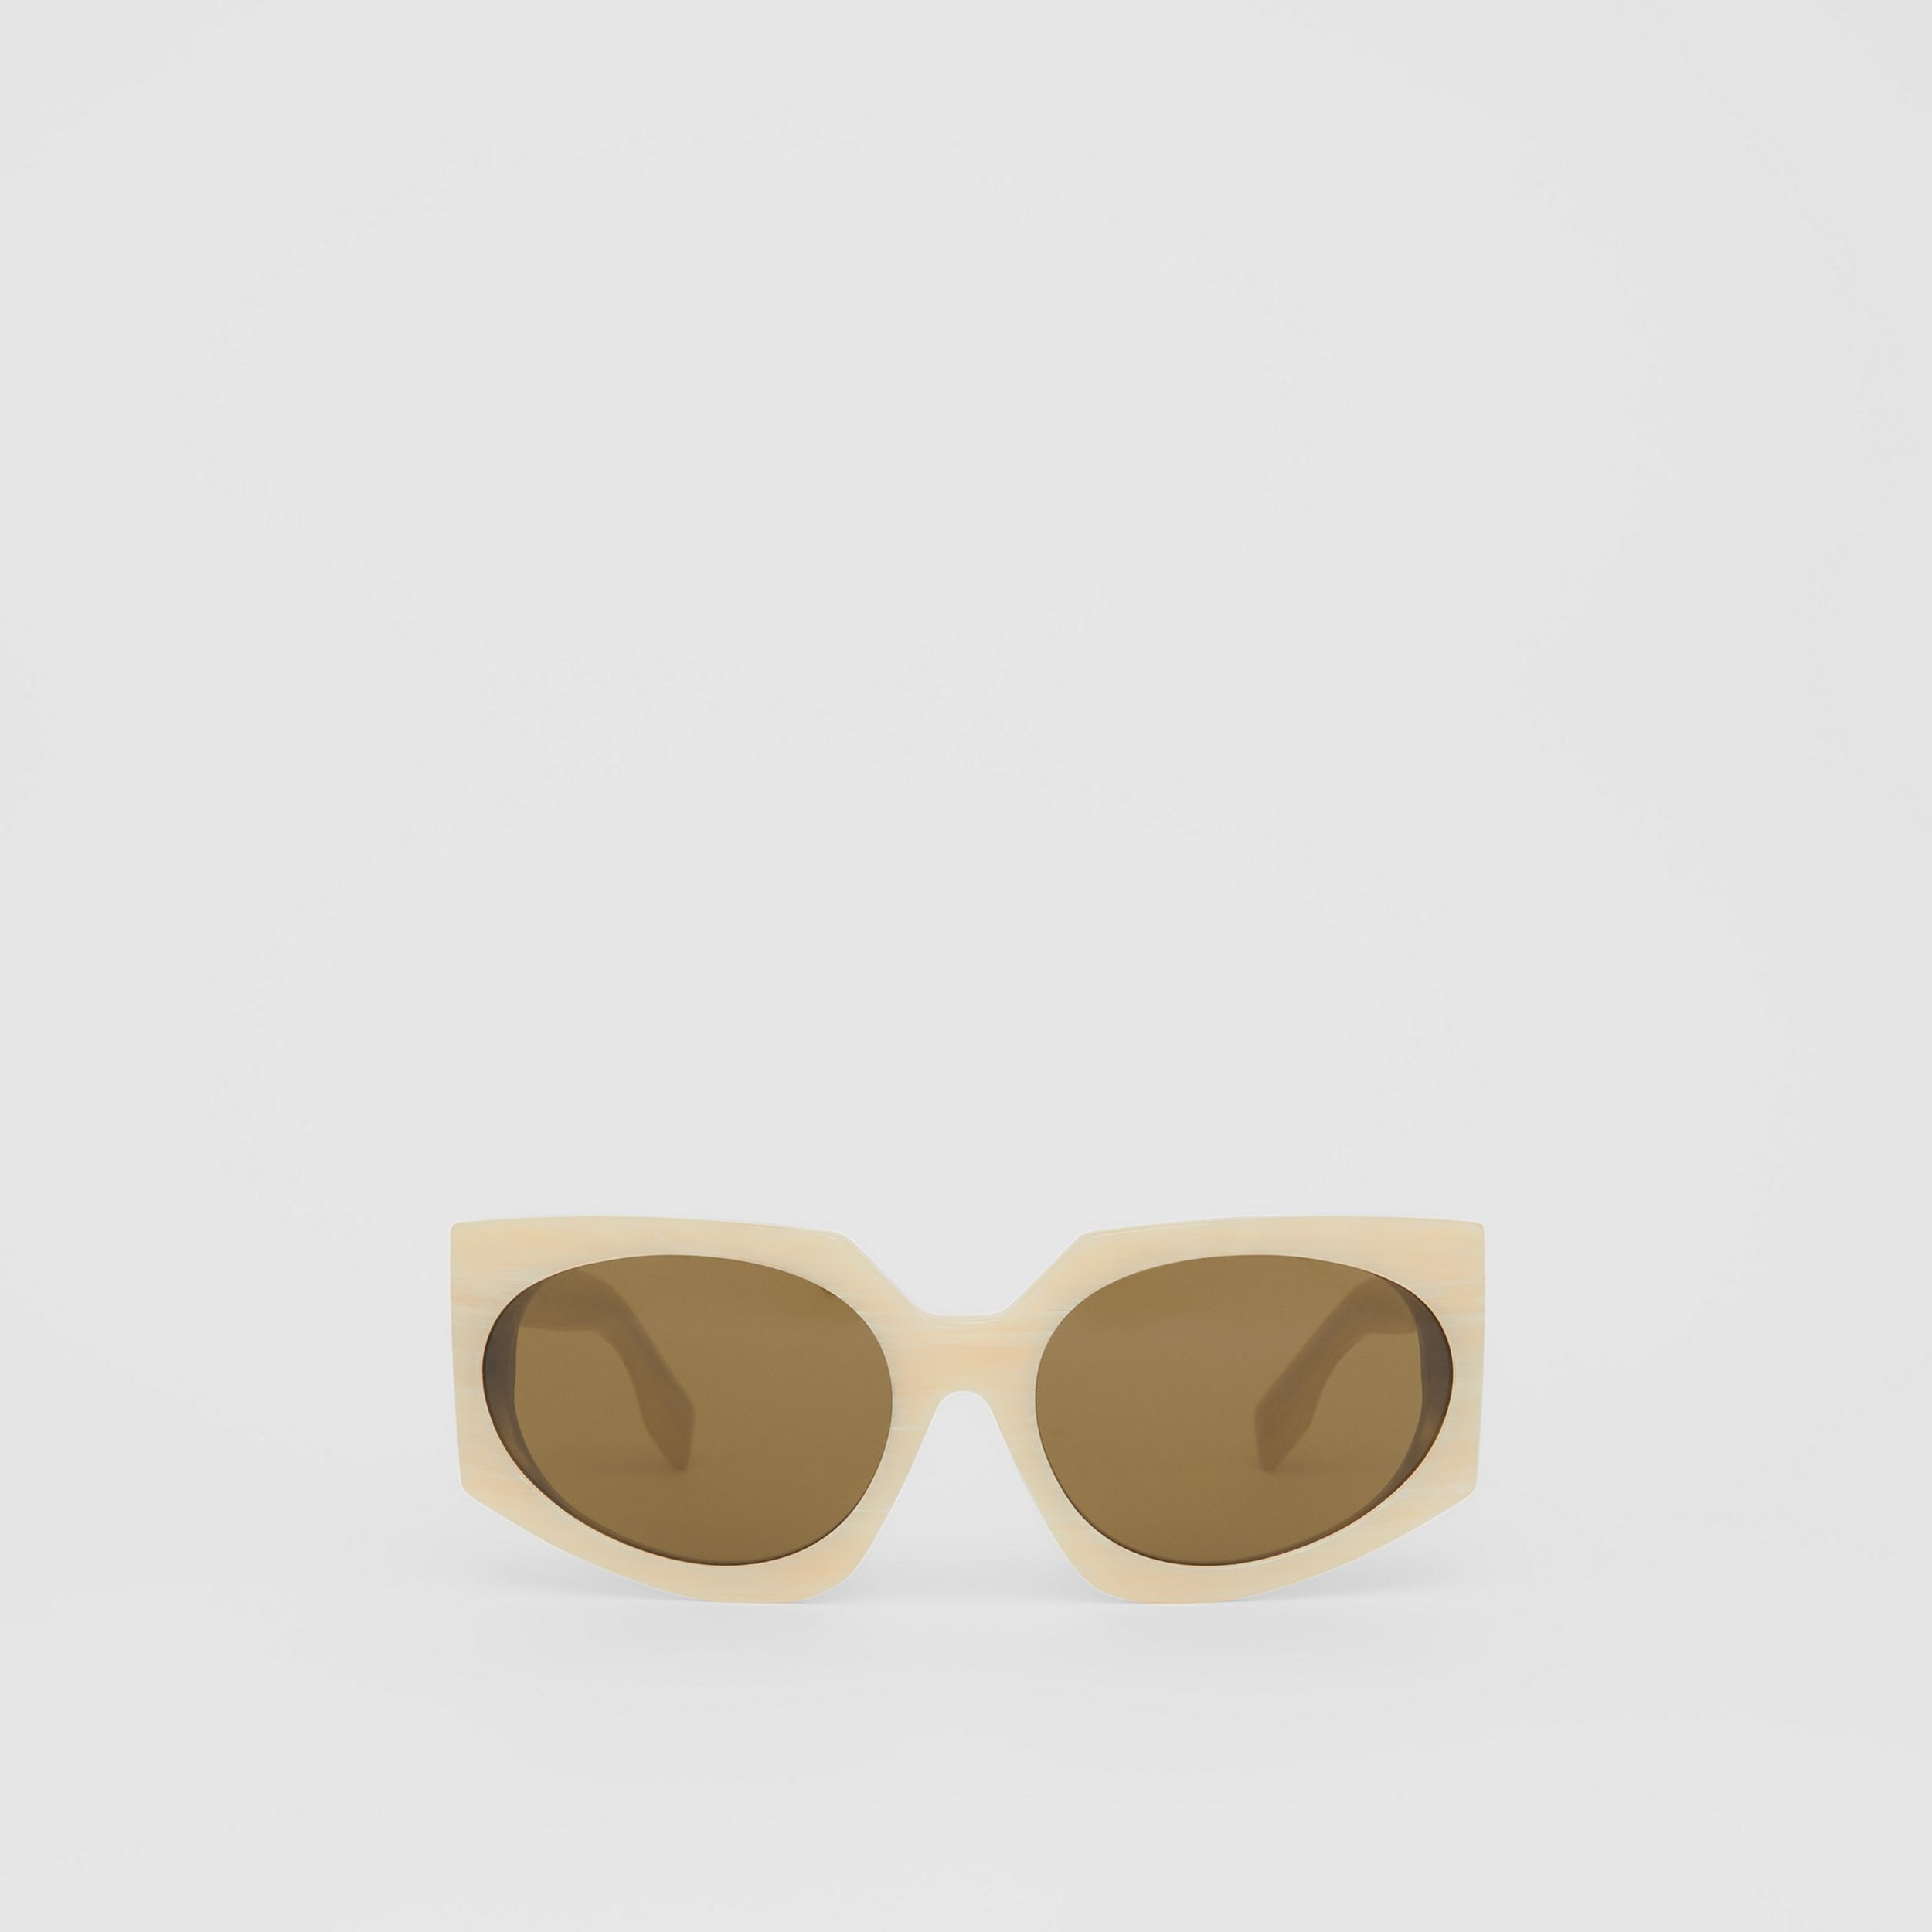 Geometric Frame Sunglasses in Light Horn - Women | Burberry - 1